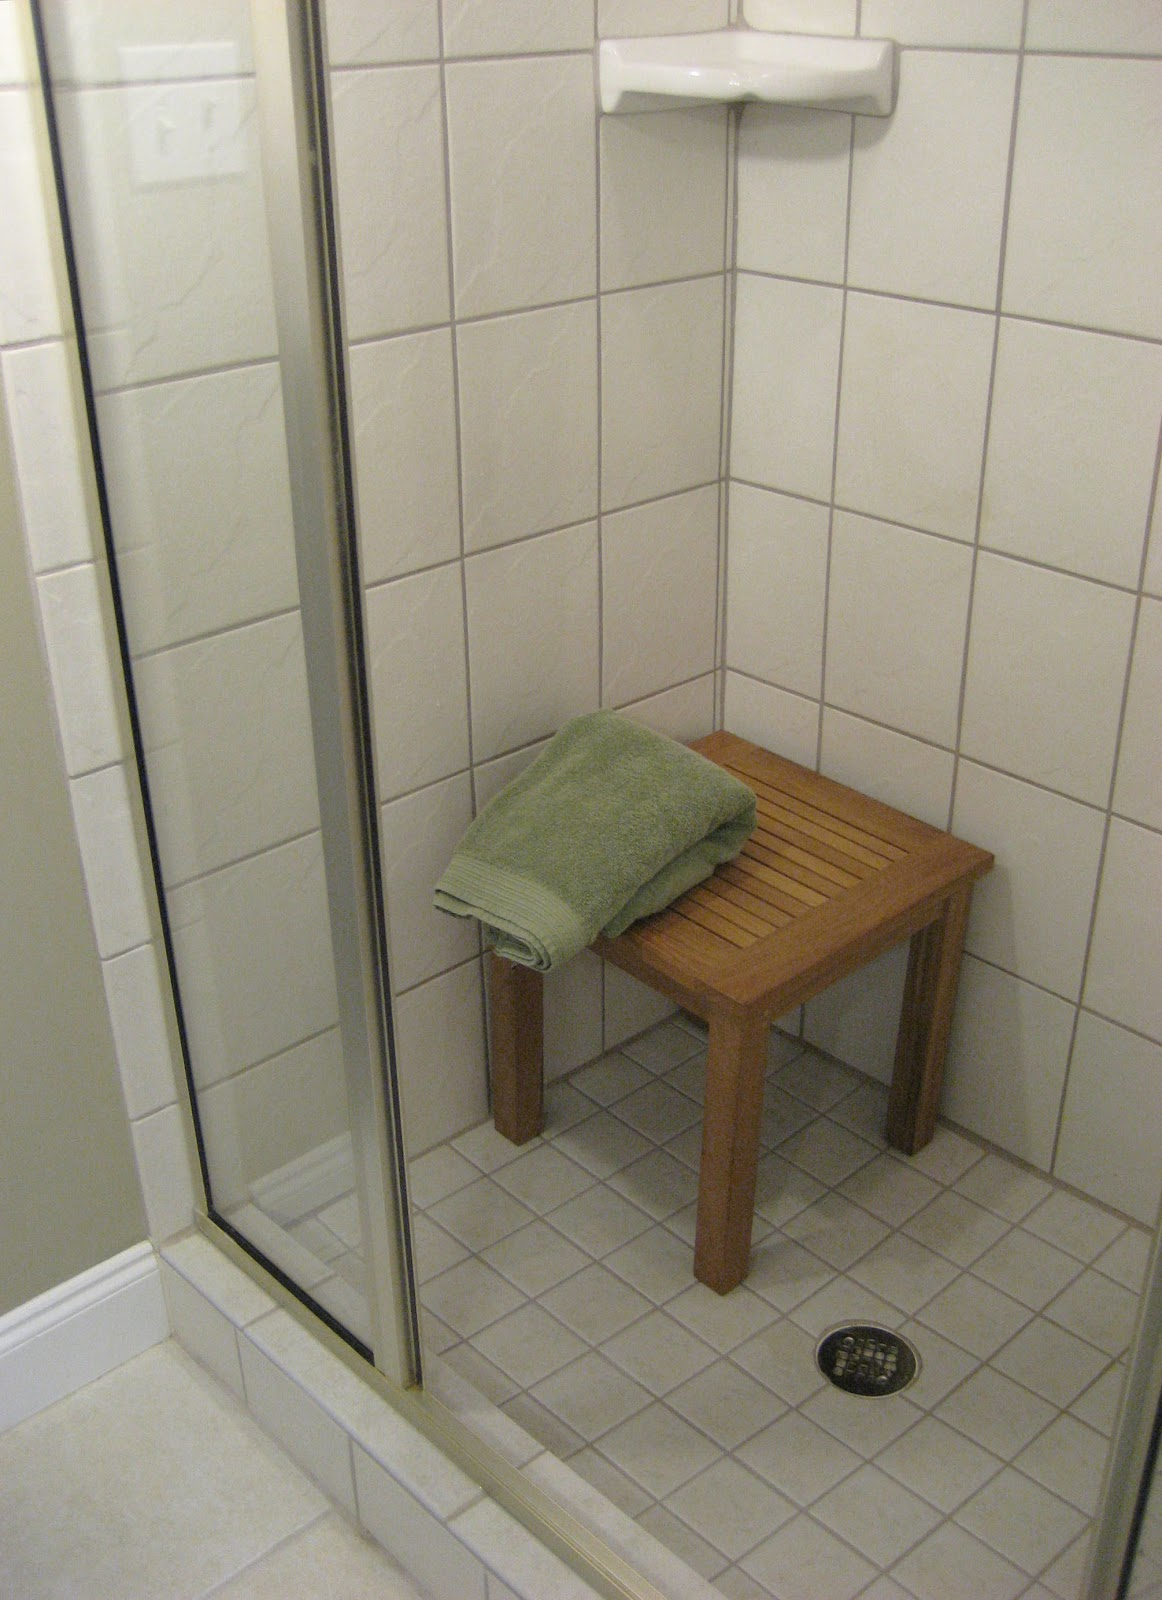 Teak shower chair with back - Teak Shower Seat